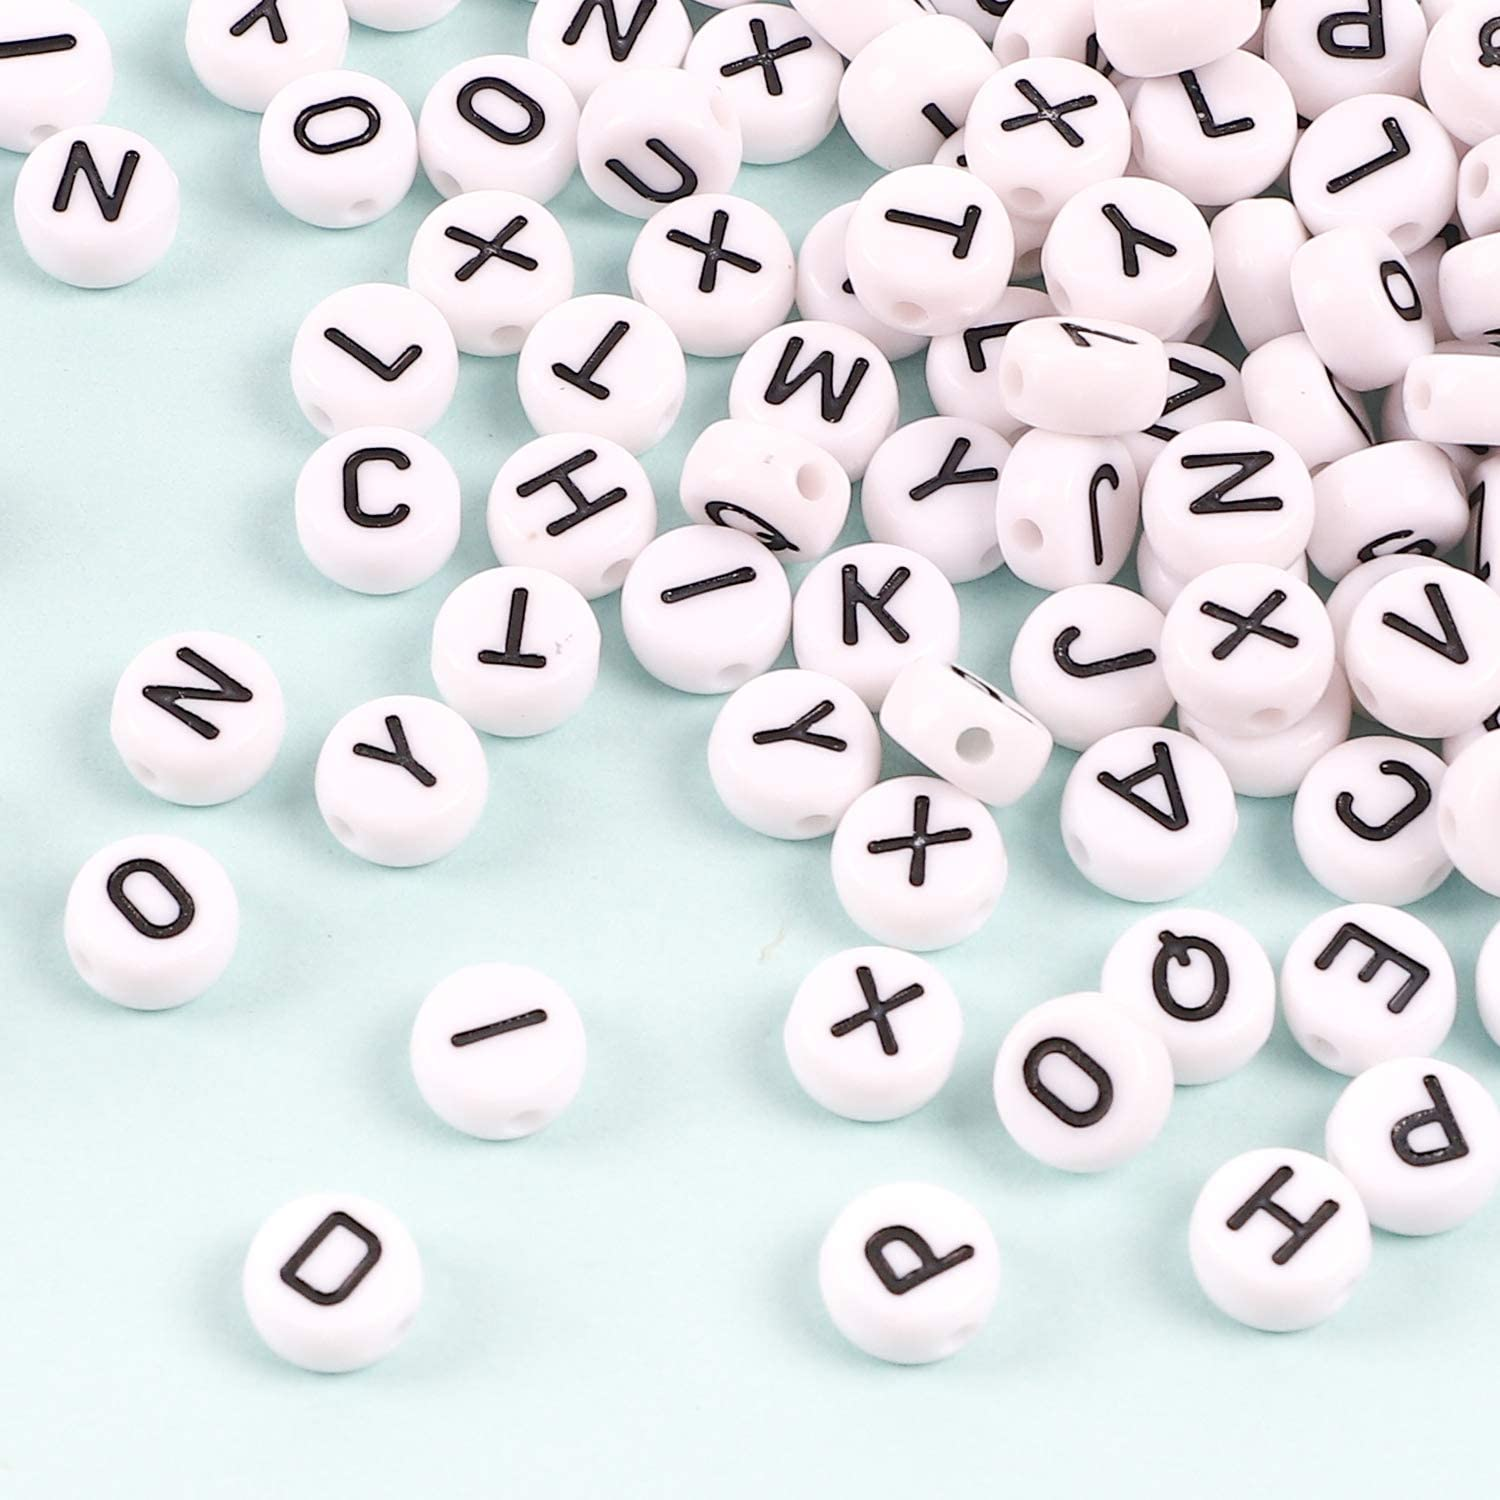 Jewelry Making and Crafts White Round Alphabet Beads for Name Bracelets 1300pcs Letter Beads UOONY 1800pcs Letter Bracelet Beads 500pcs Large Hole Beads Multi Color